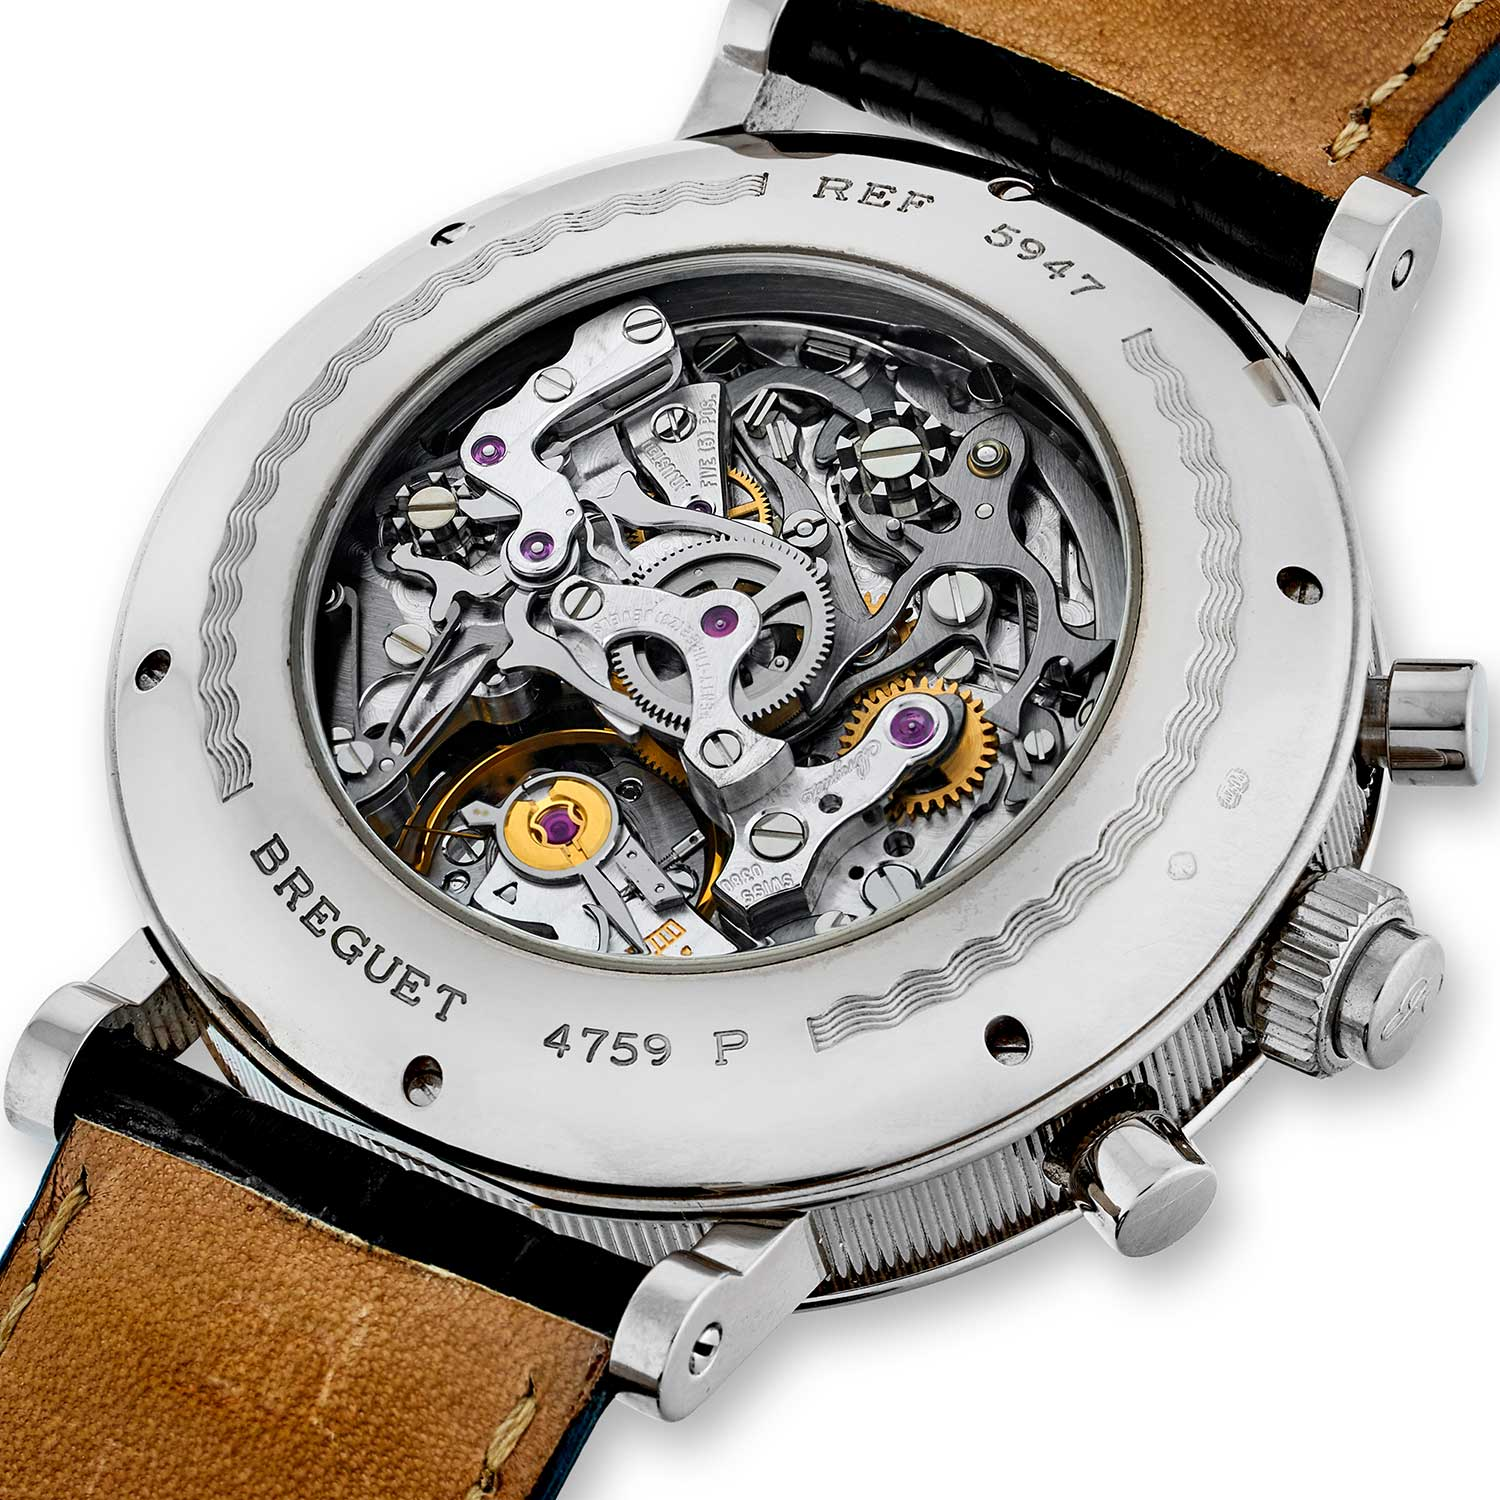 View of the Breguet 5947's caseback showcasing the Cal. 535N powering the timepiece (Image: Christies.com)